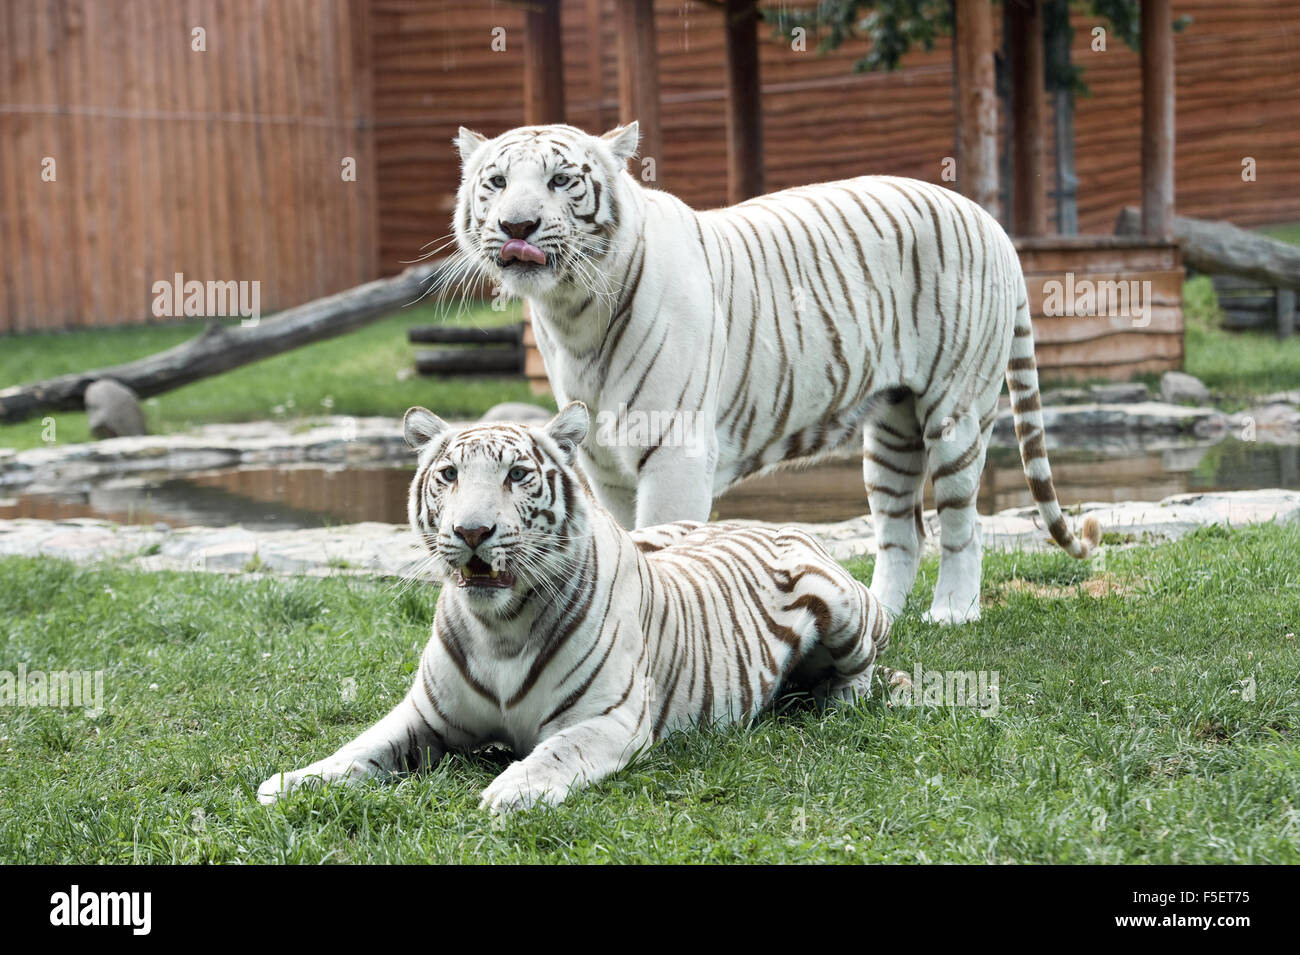 Two white Bengal tigers pictured in ZOO enclosure - Stock Image